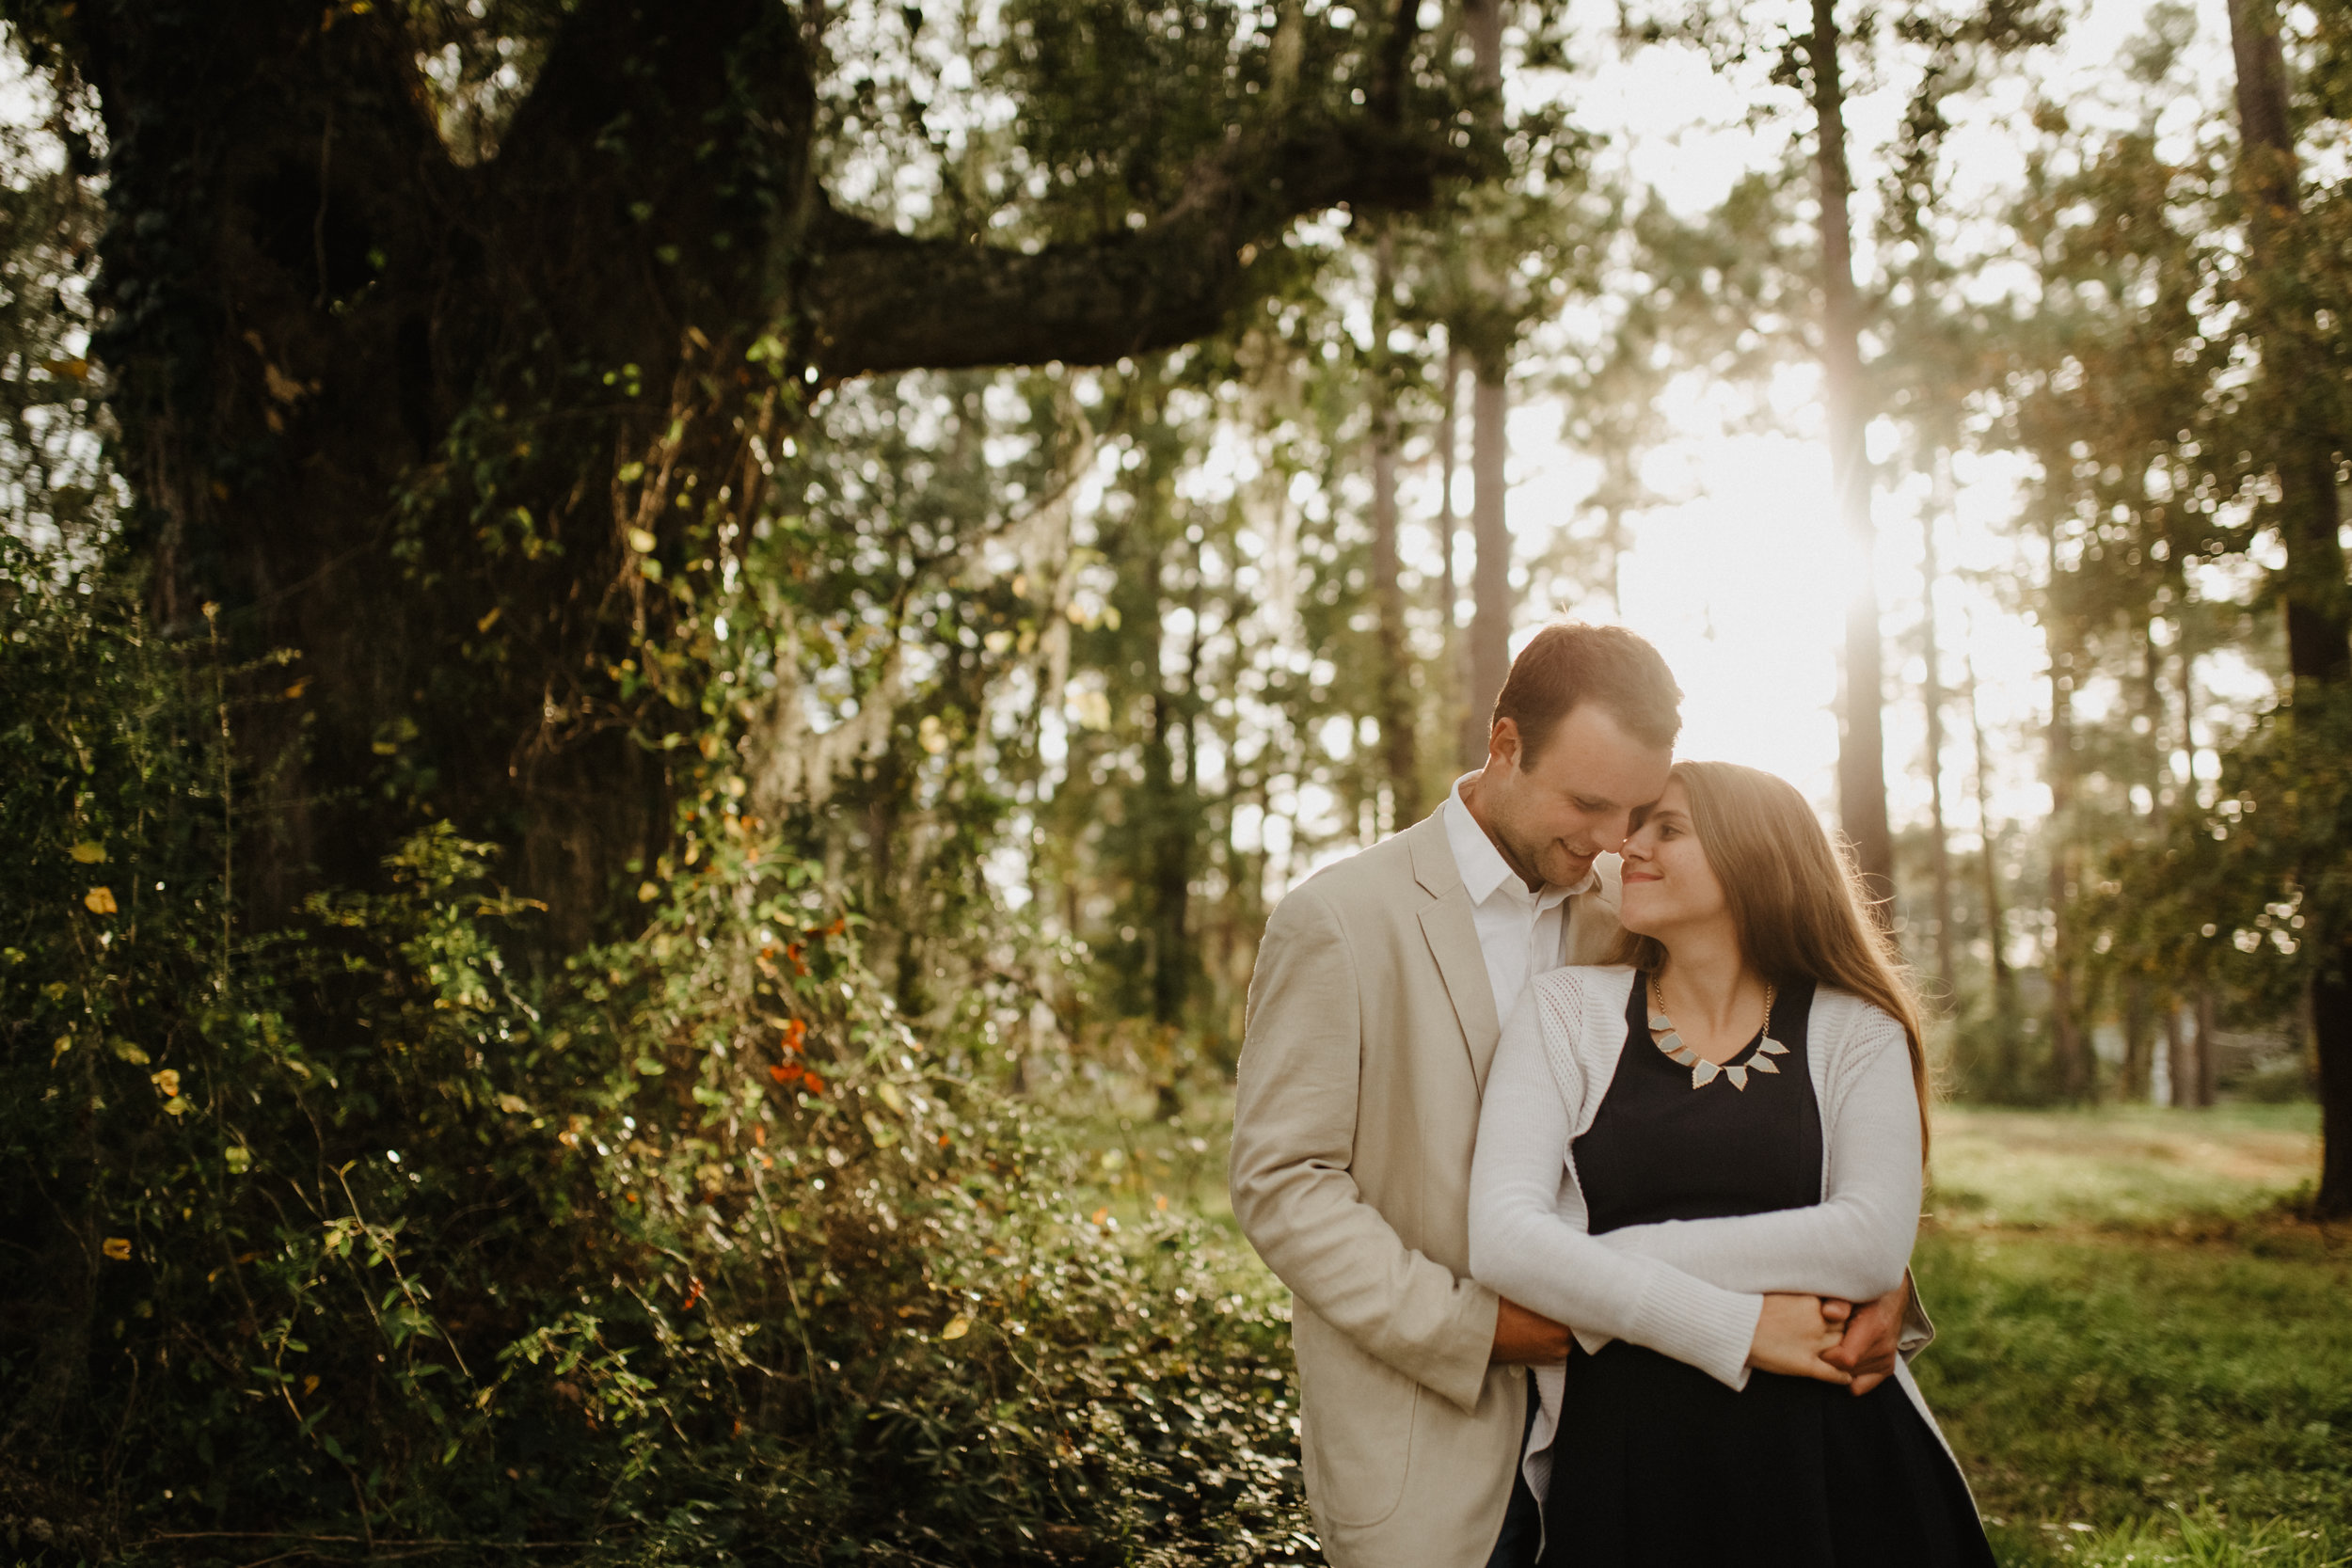 ShadowShinePictures-RachelDavid-Eudy-Engagement-Photography-480.jpg